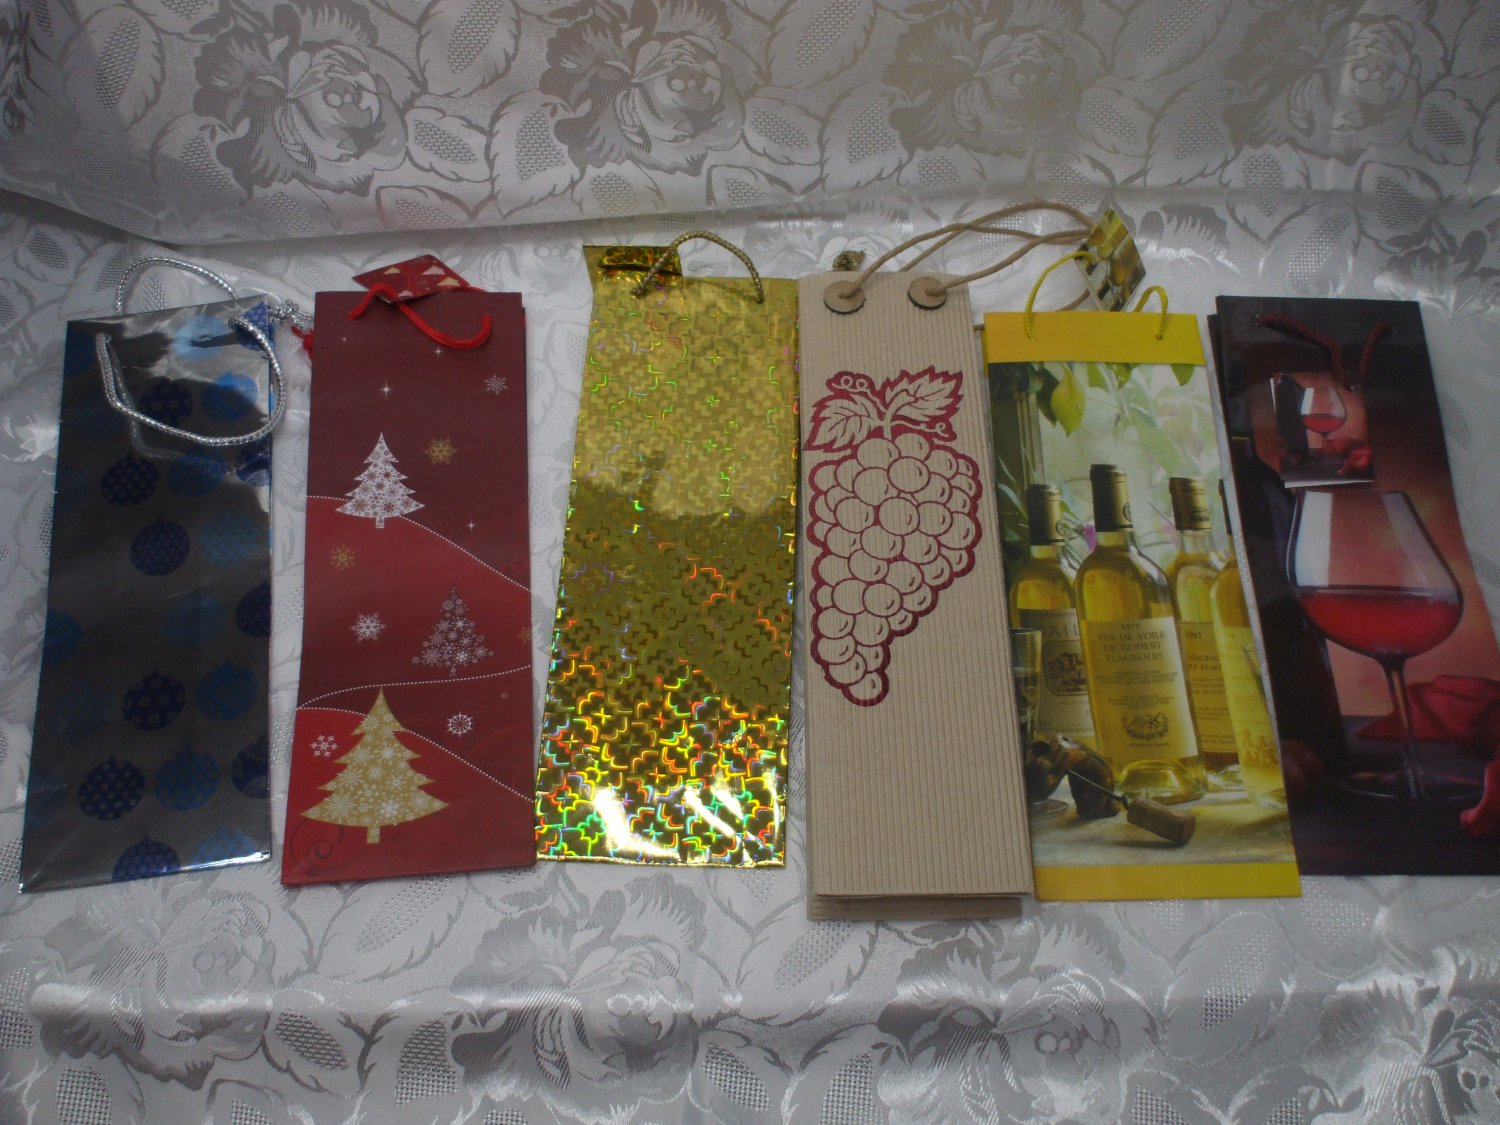 6 EMPTY  Wine Bottle Bags For Holidays